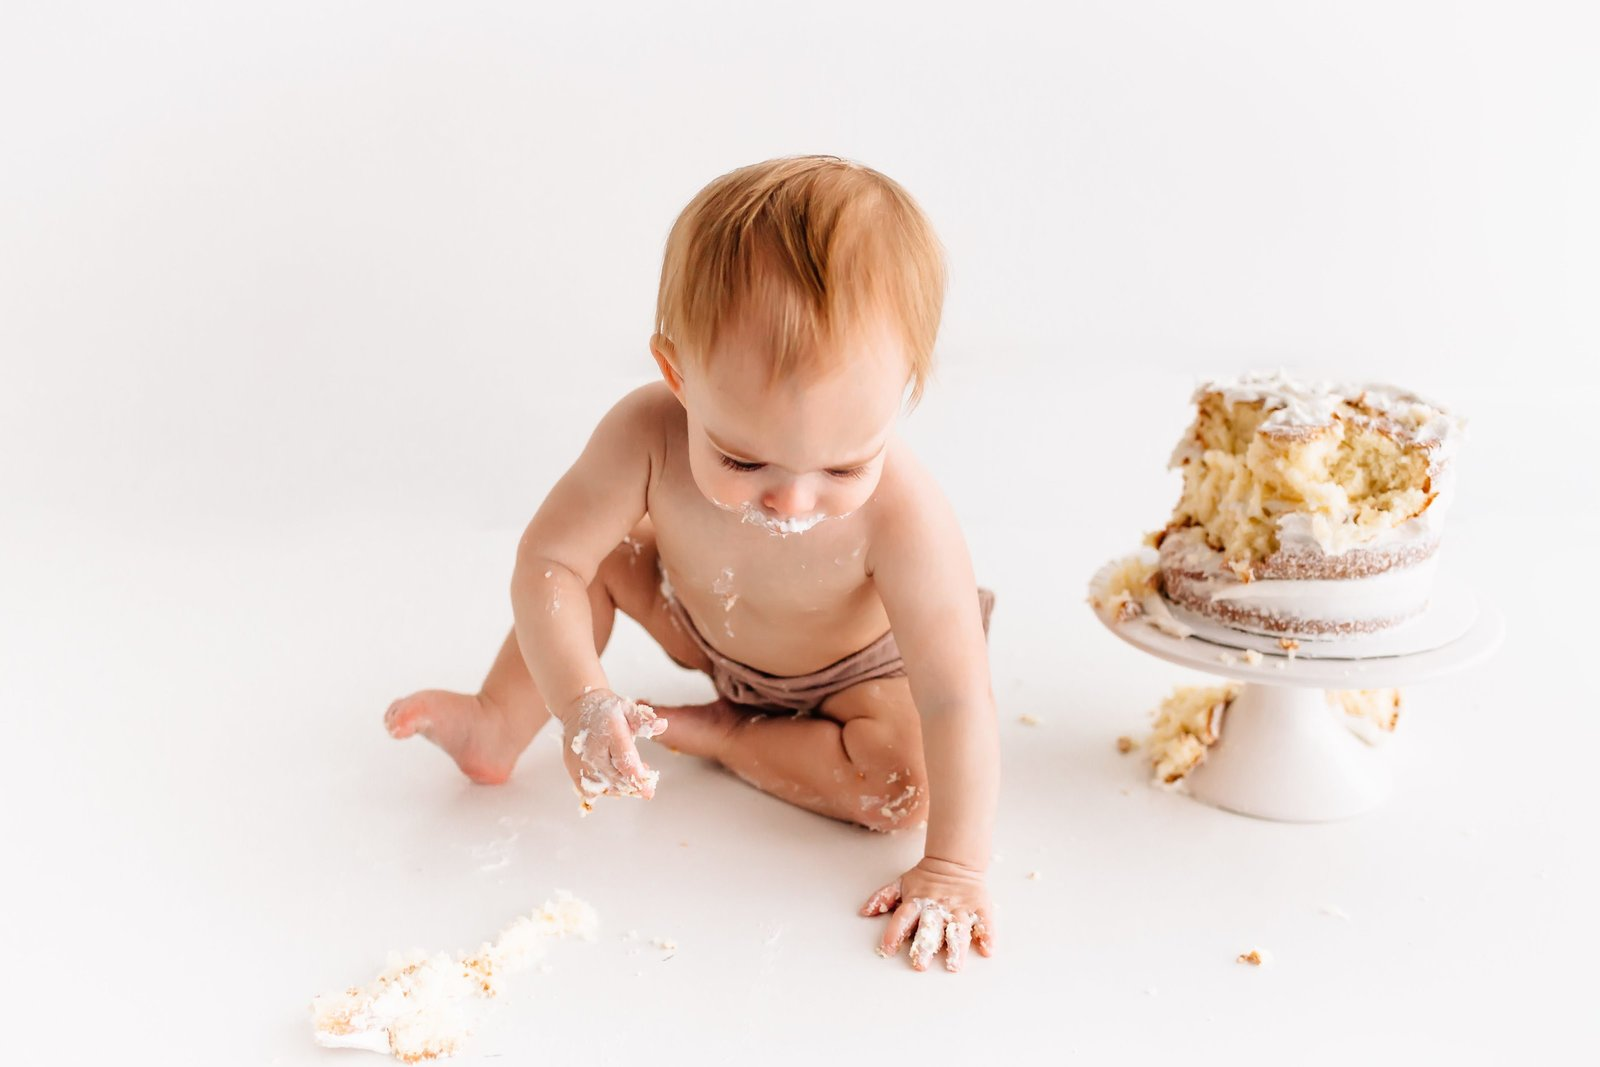 St_Louis_Baby_Photographer_Kelly_Laramore_Photography_110